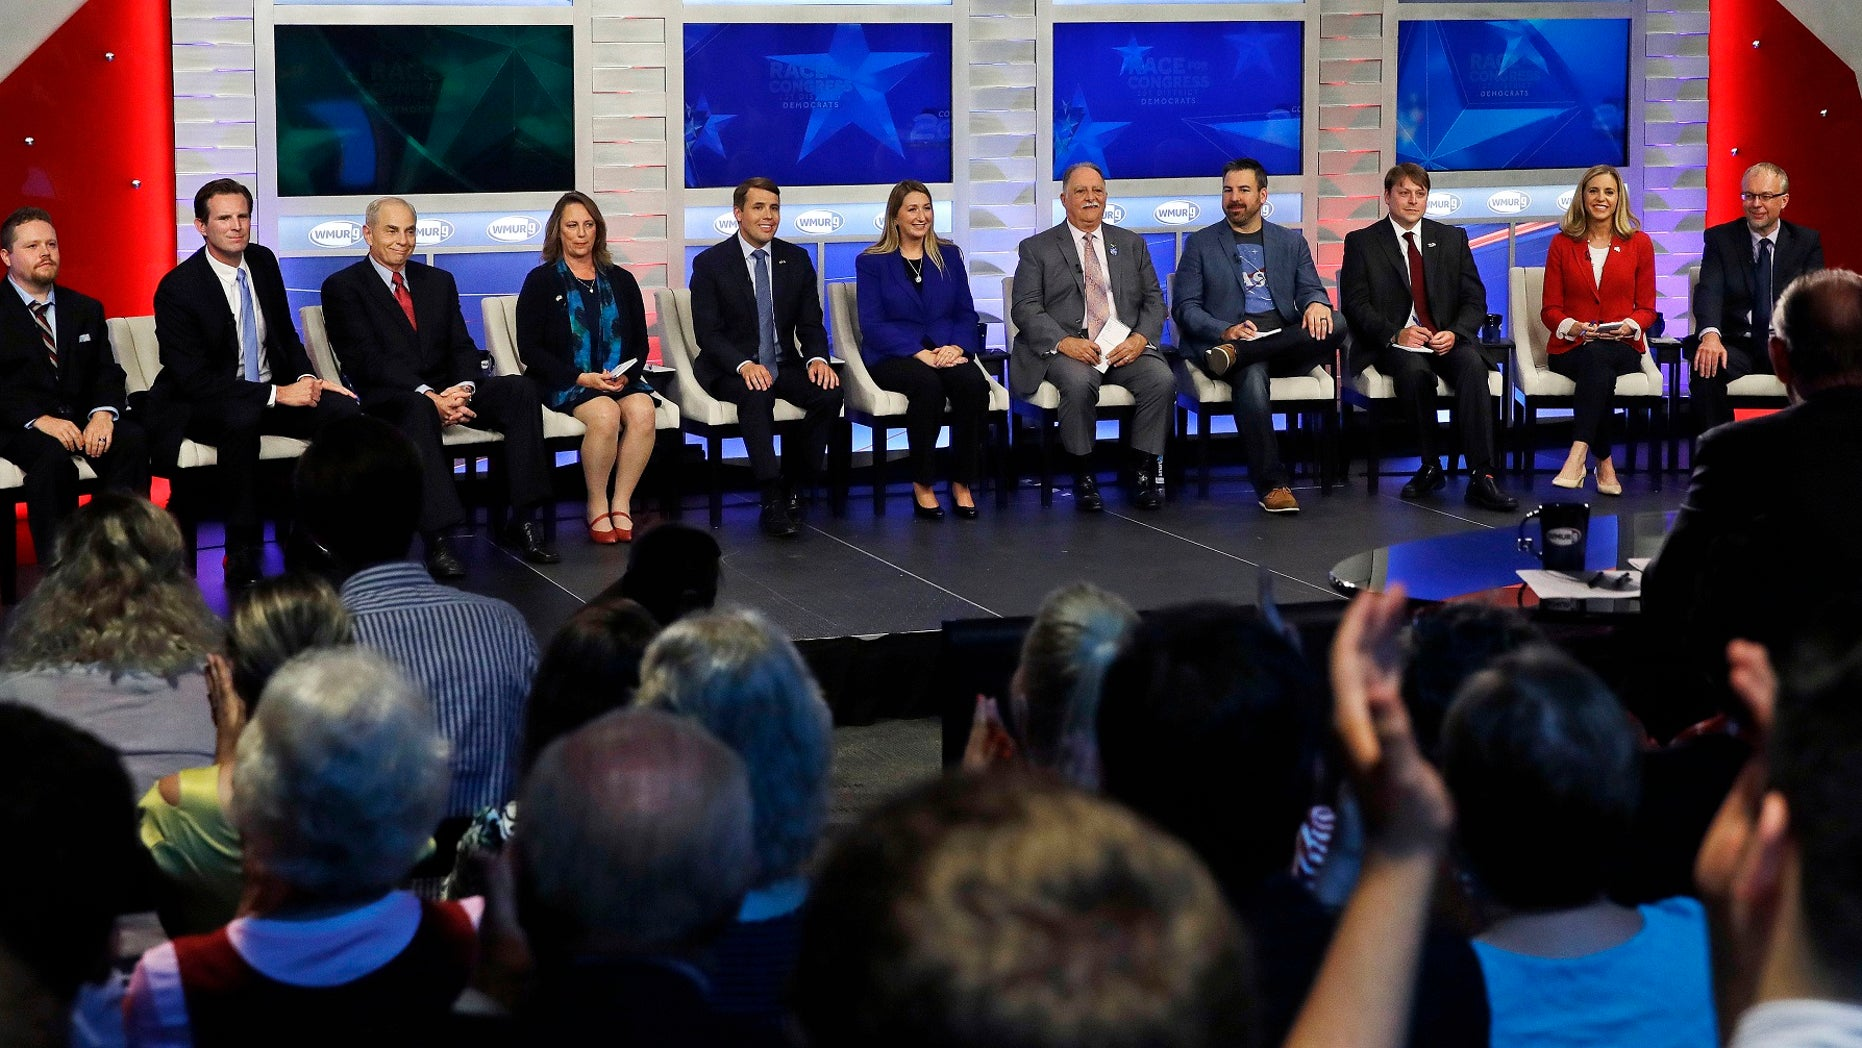 There are 11 Democrats vying for the open U.S. House seat in New Hampshire's 1st congressional district. On the other side of the aisle, five Republicans are battling it out for the GOP nomination for the seat.